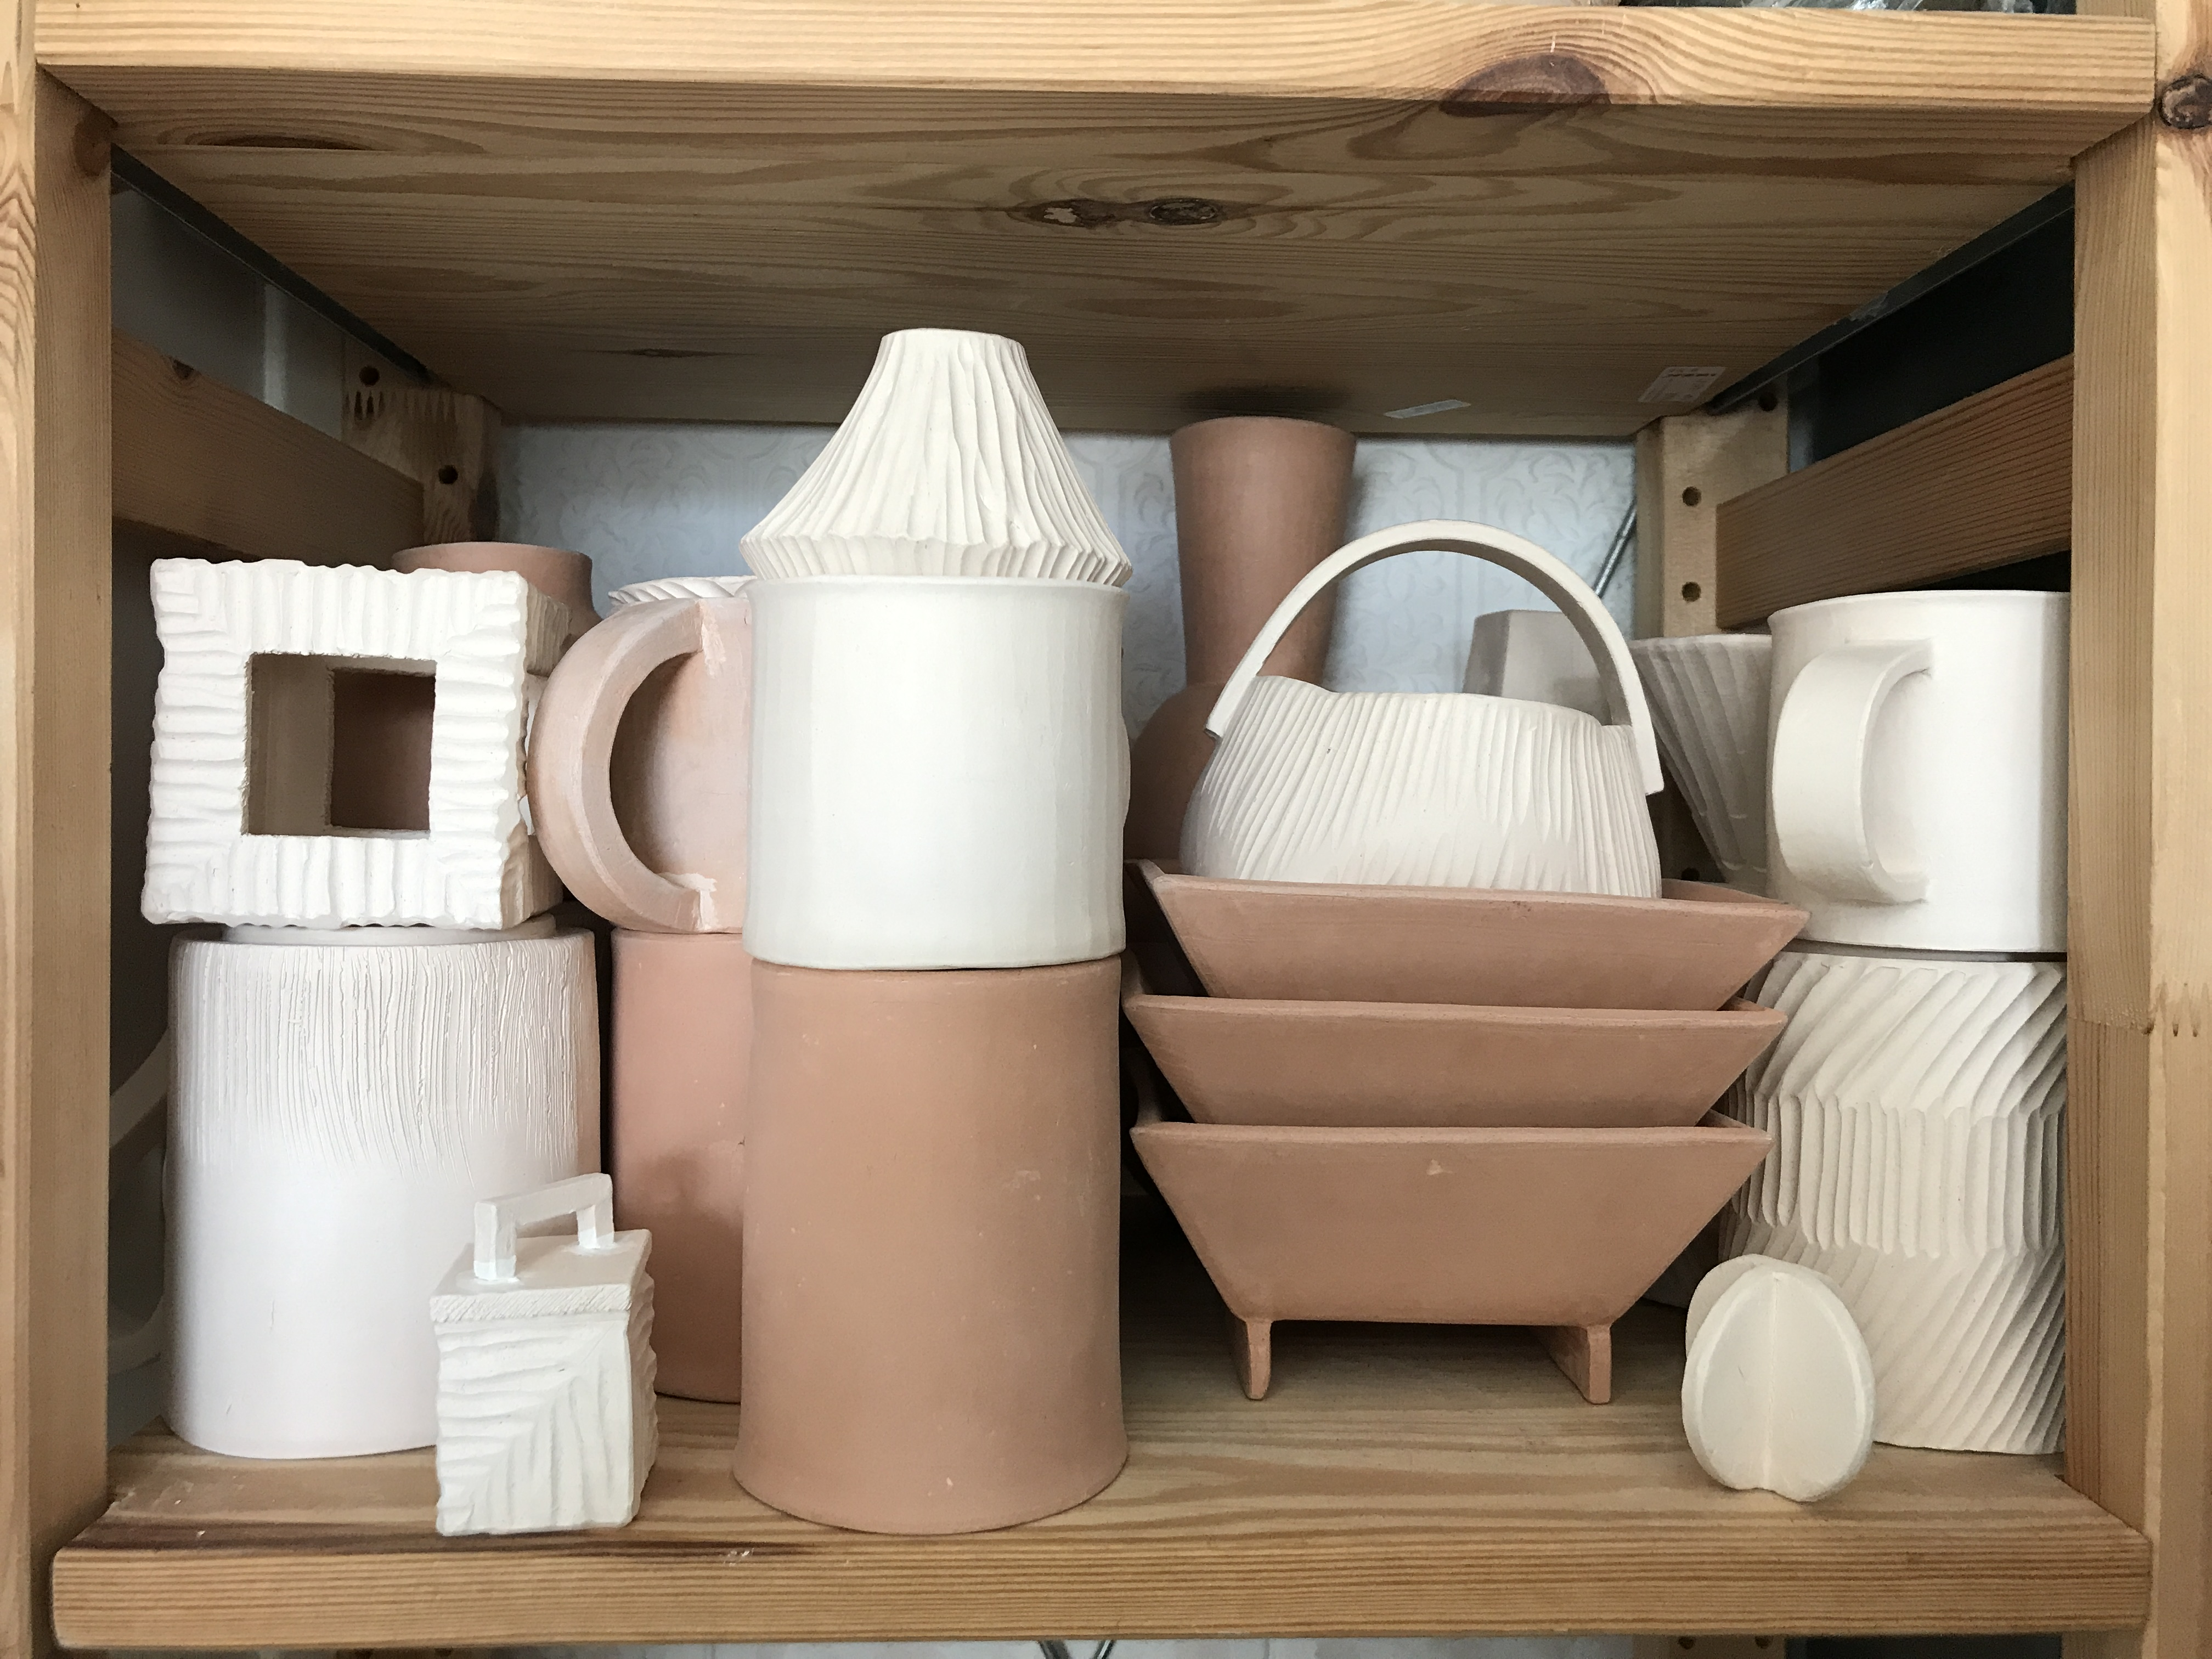 Bisque-ware awaiting glaze